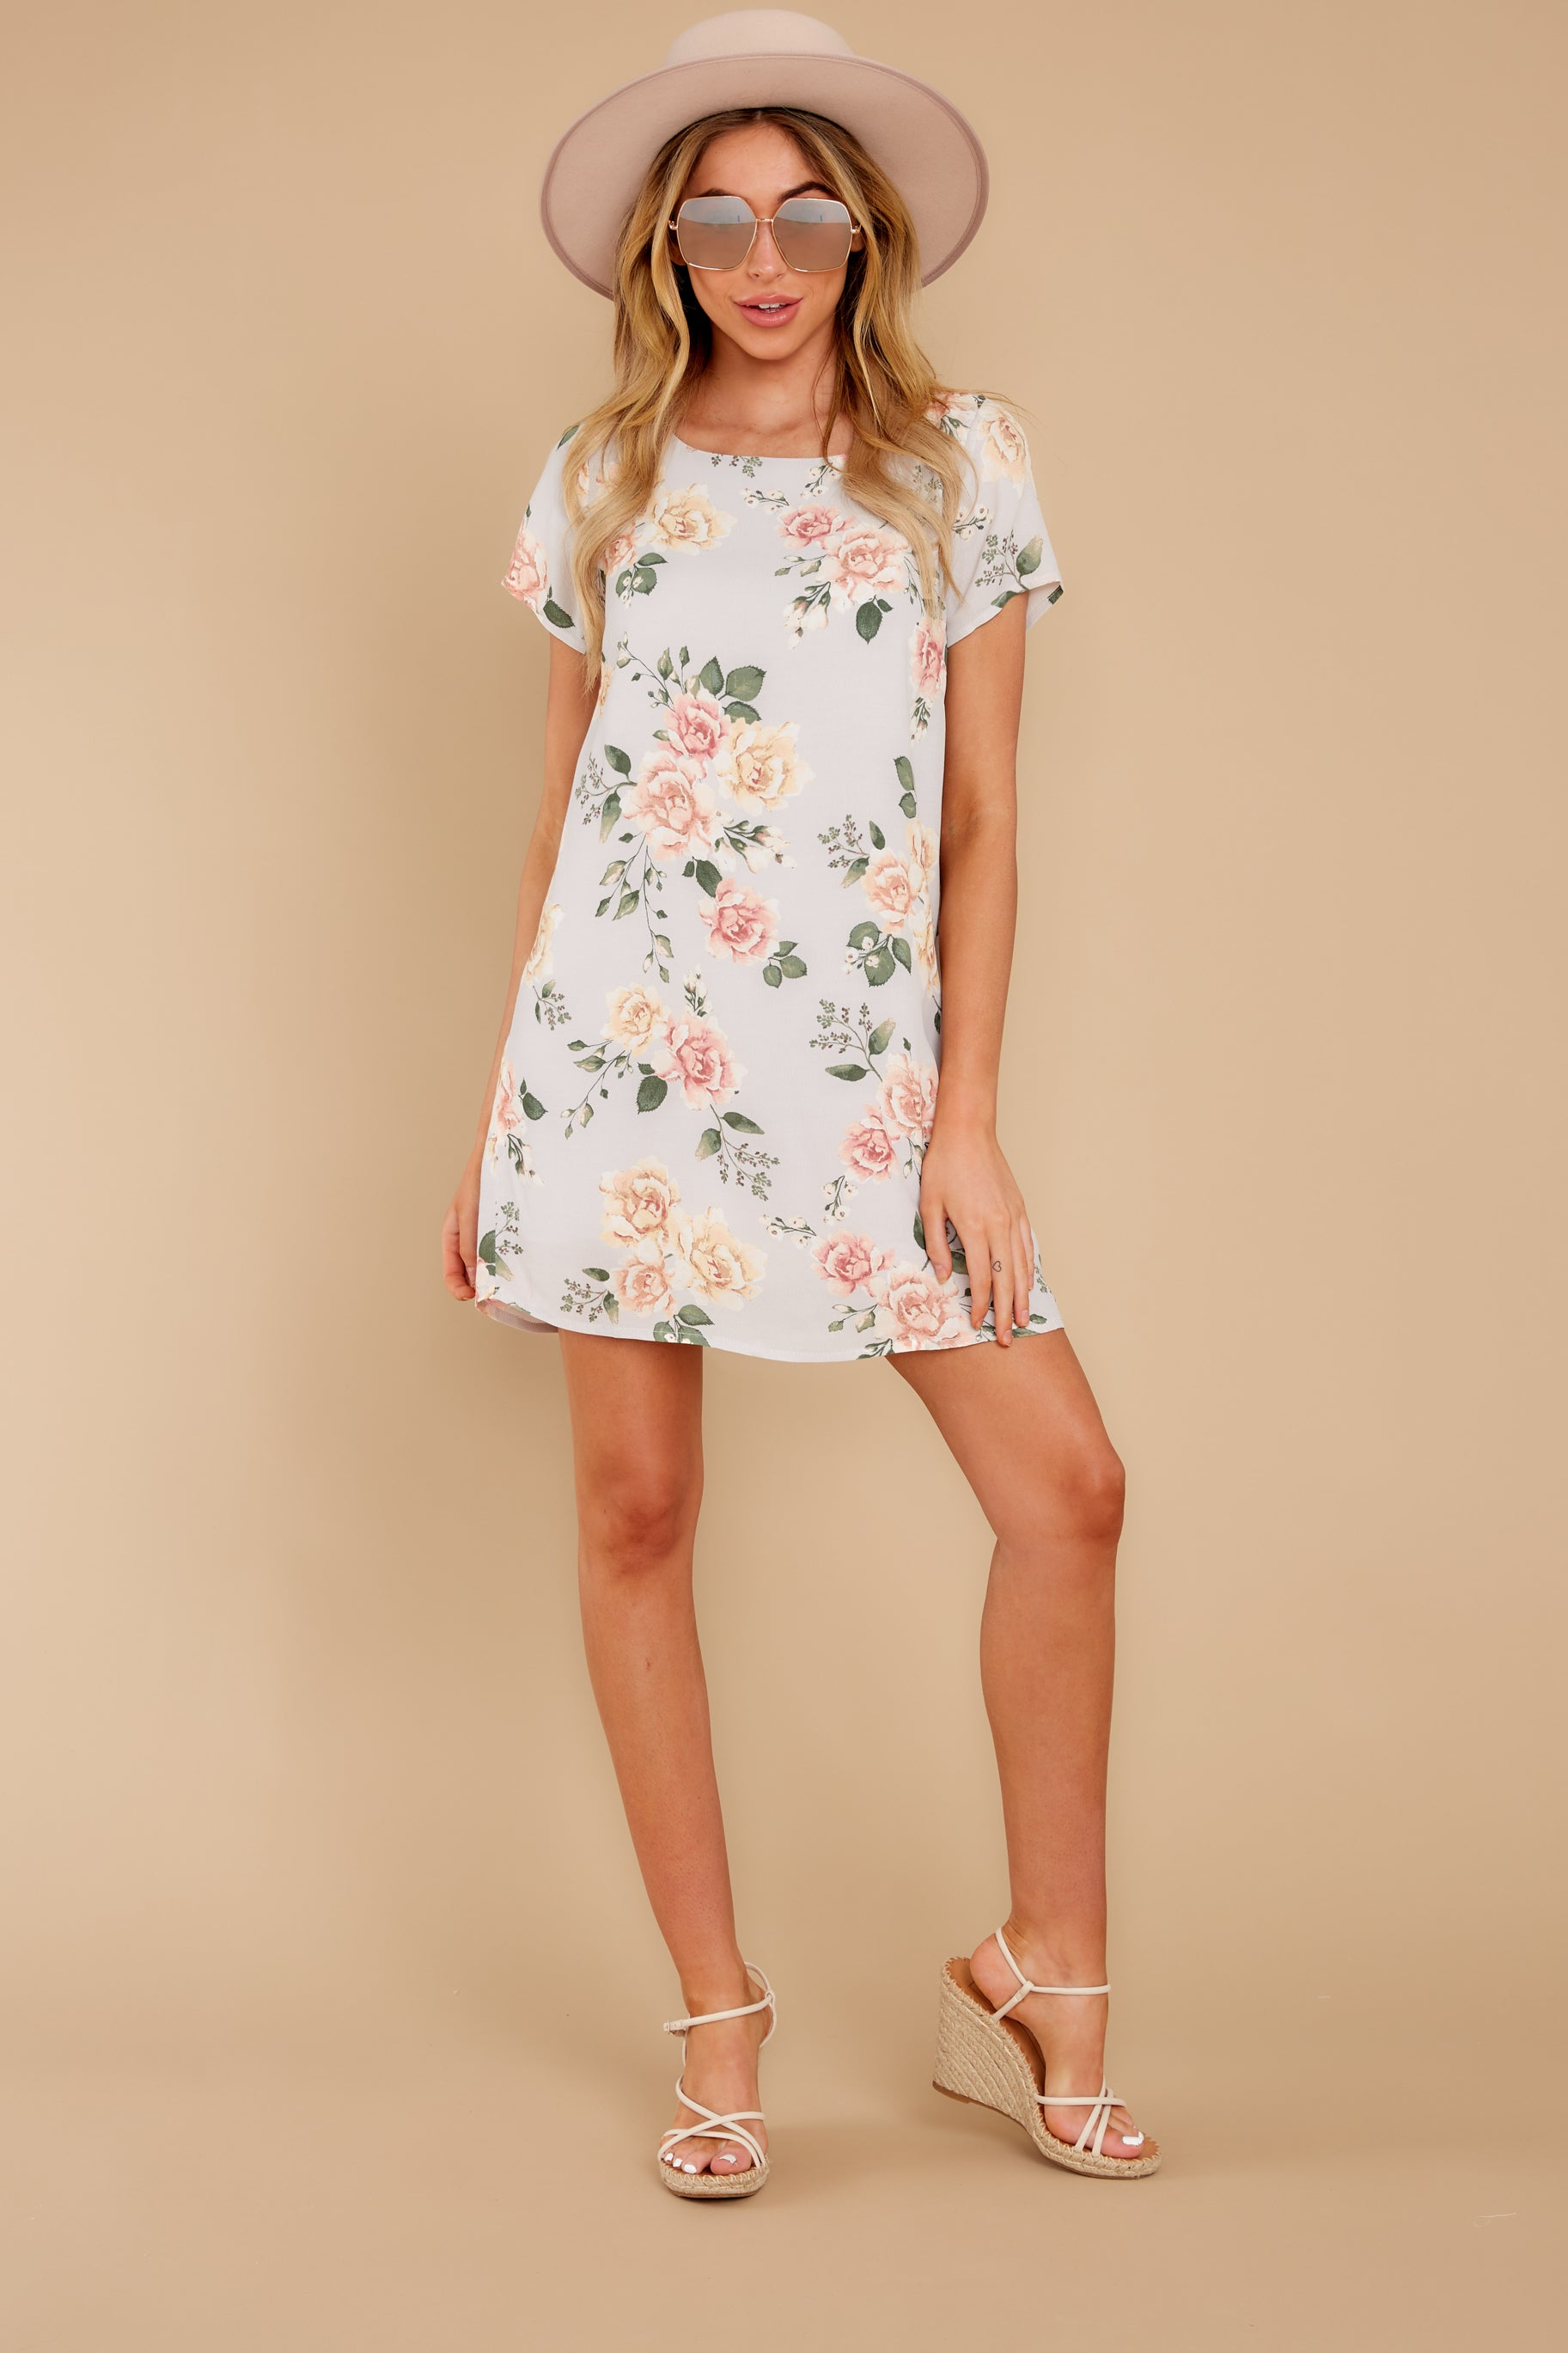 4 In The Rose Garden Lavender Floral Print Dress at reddress.com